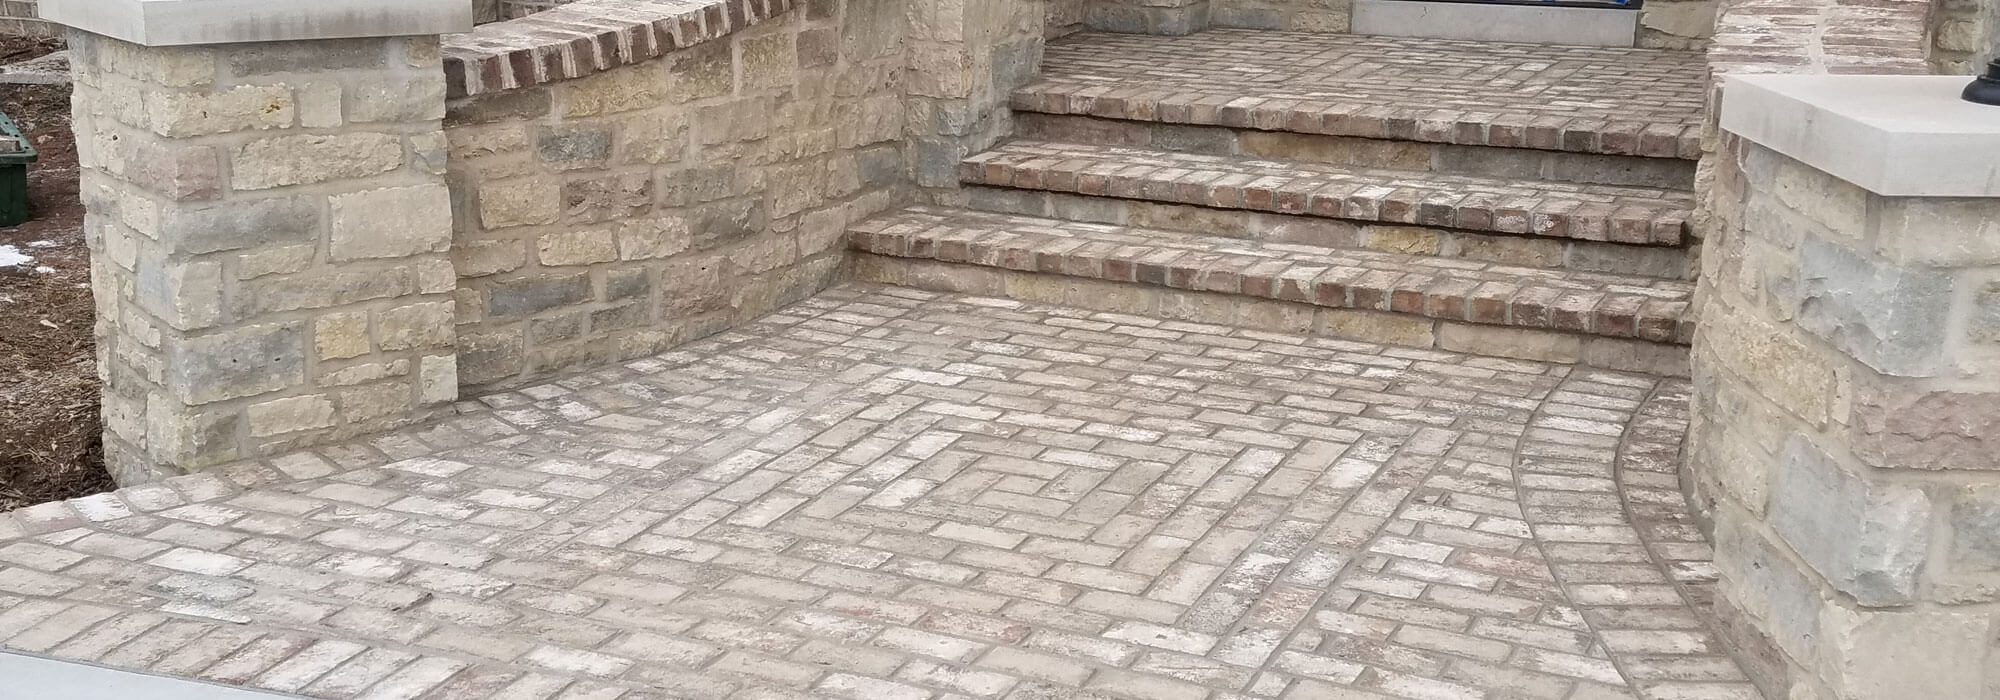 Appleton Patio Installation Services - Ulman Masonry